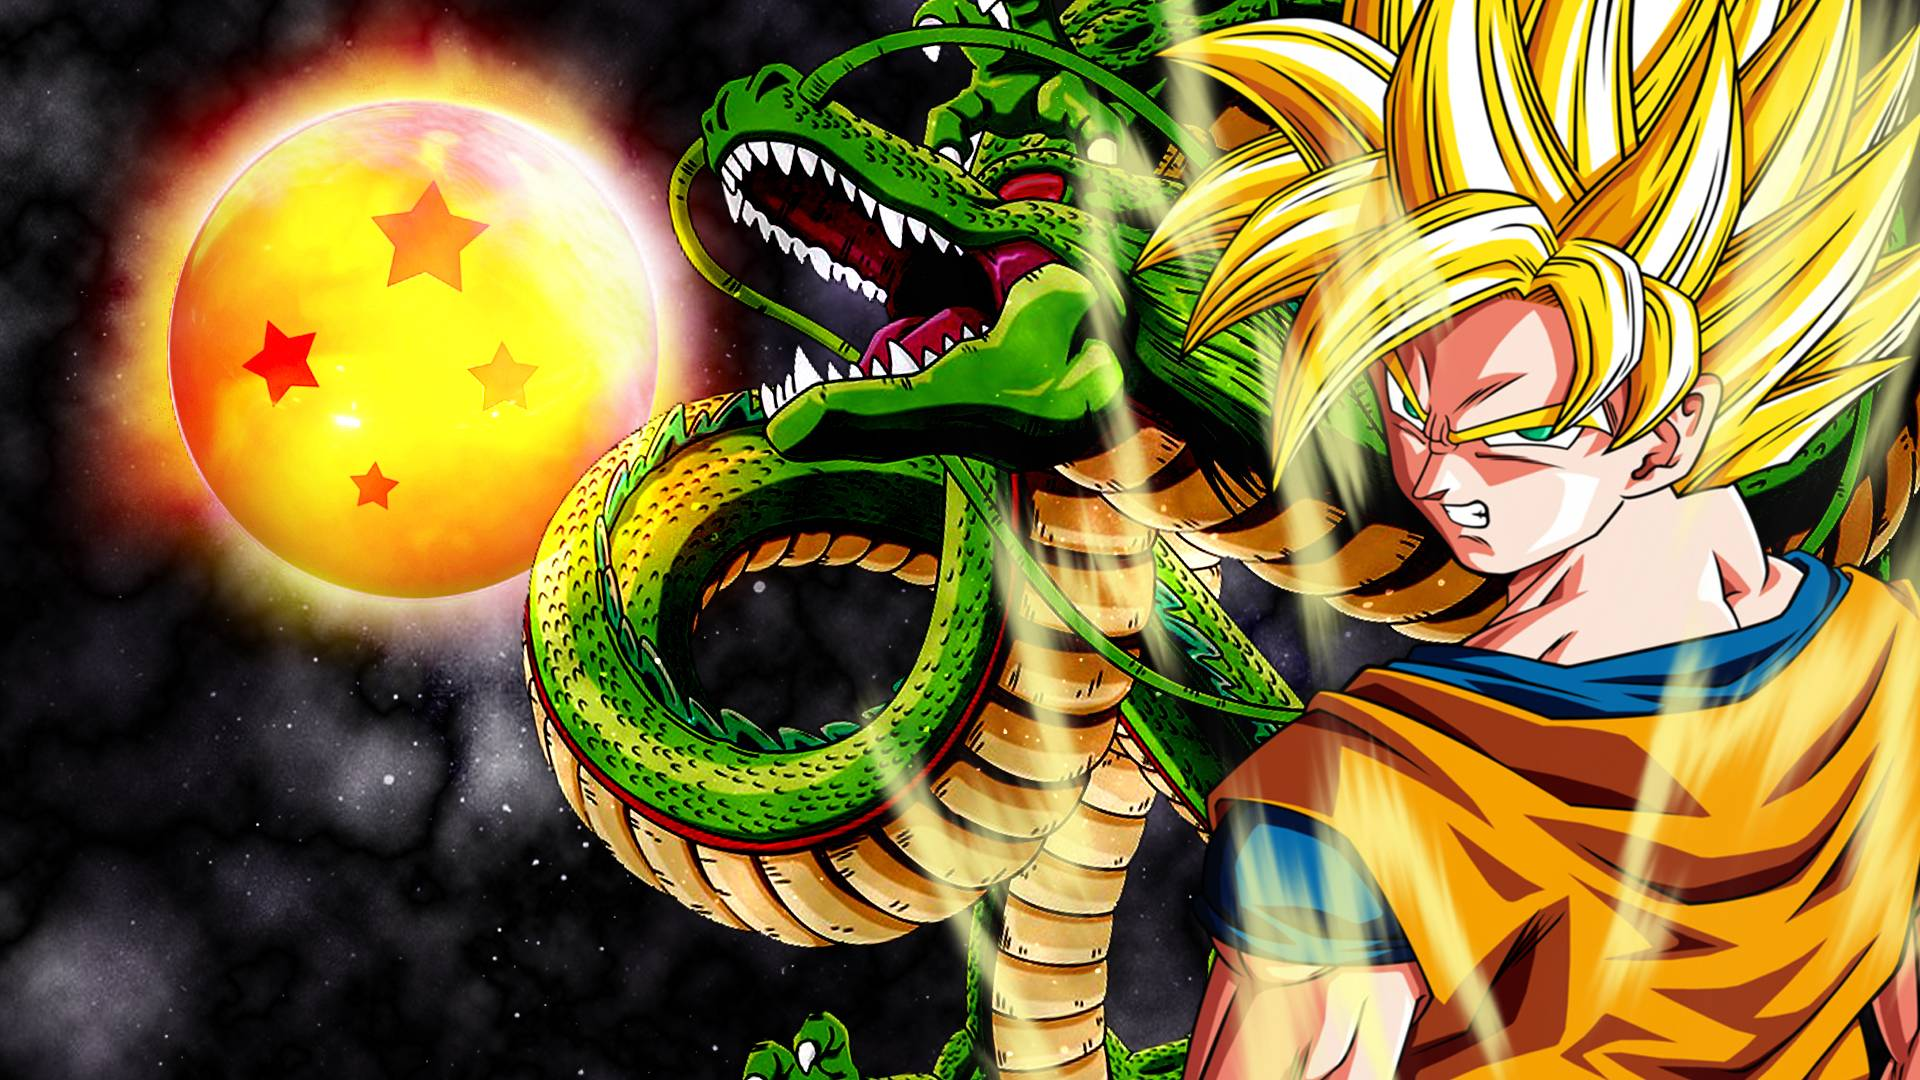 Espectaculares Wallpapers De Dragon Ball Z